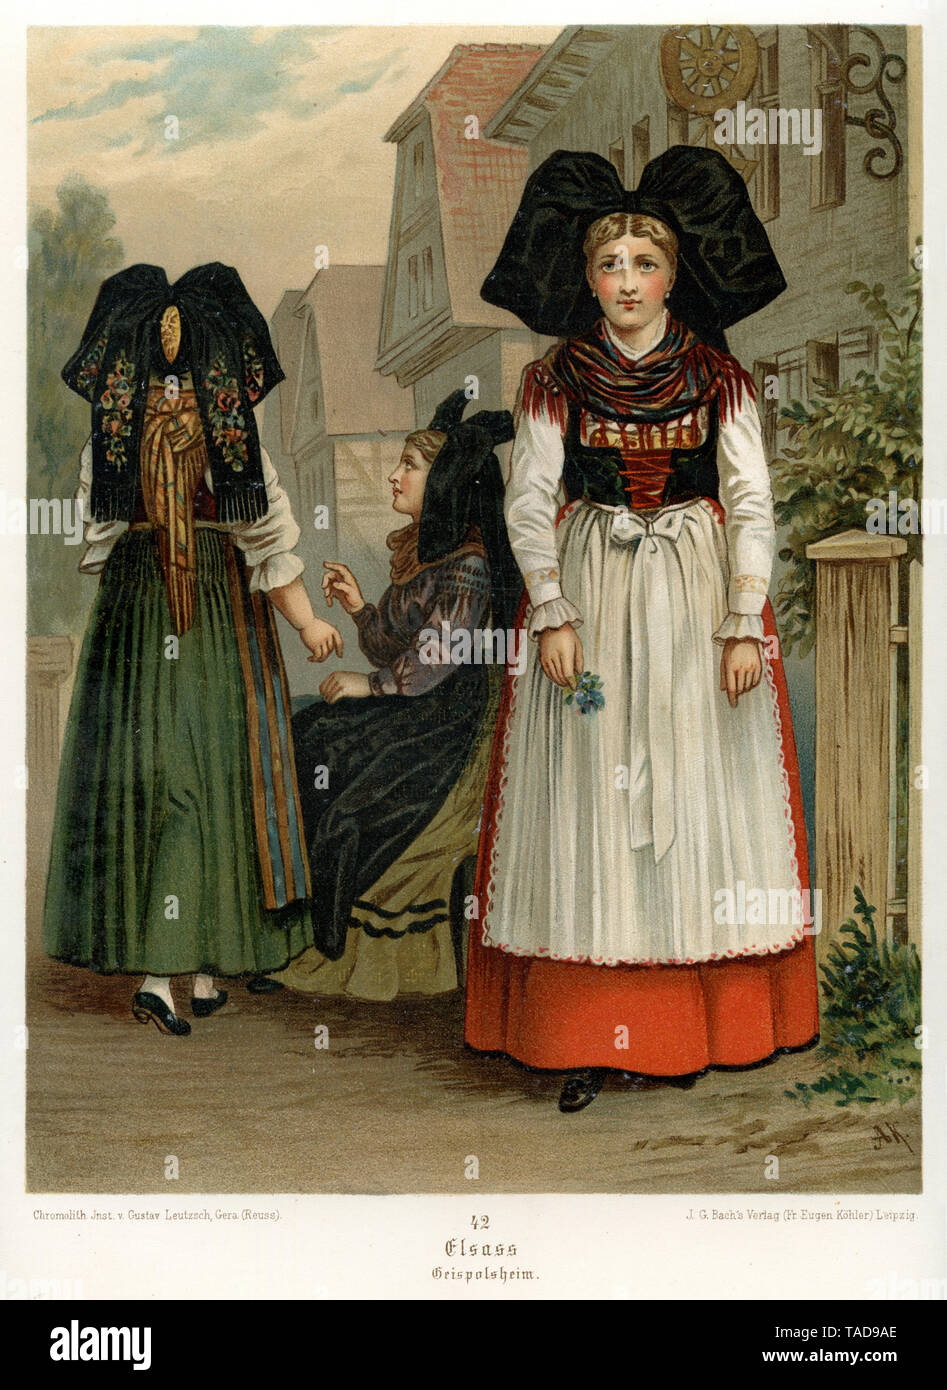 traditional costumes from Alsace: Geispolsheim, from Albert Kretschmer, German folk costumes, 1889 , Albert Kretschmer (, ) - Stock Image